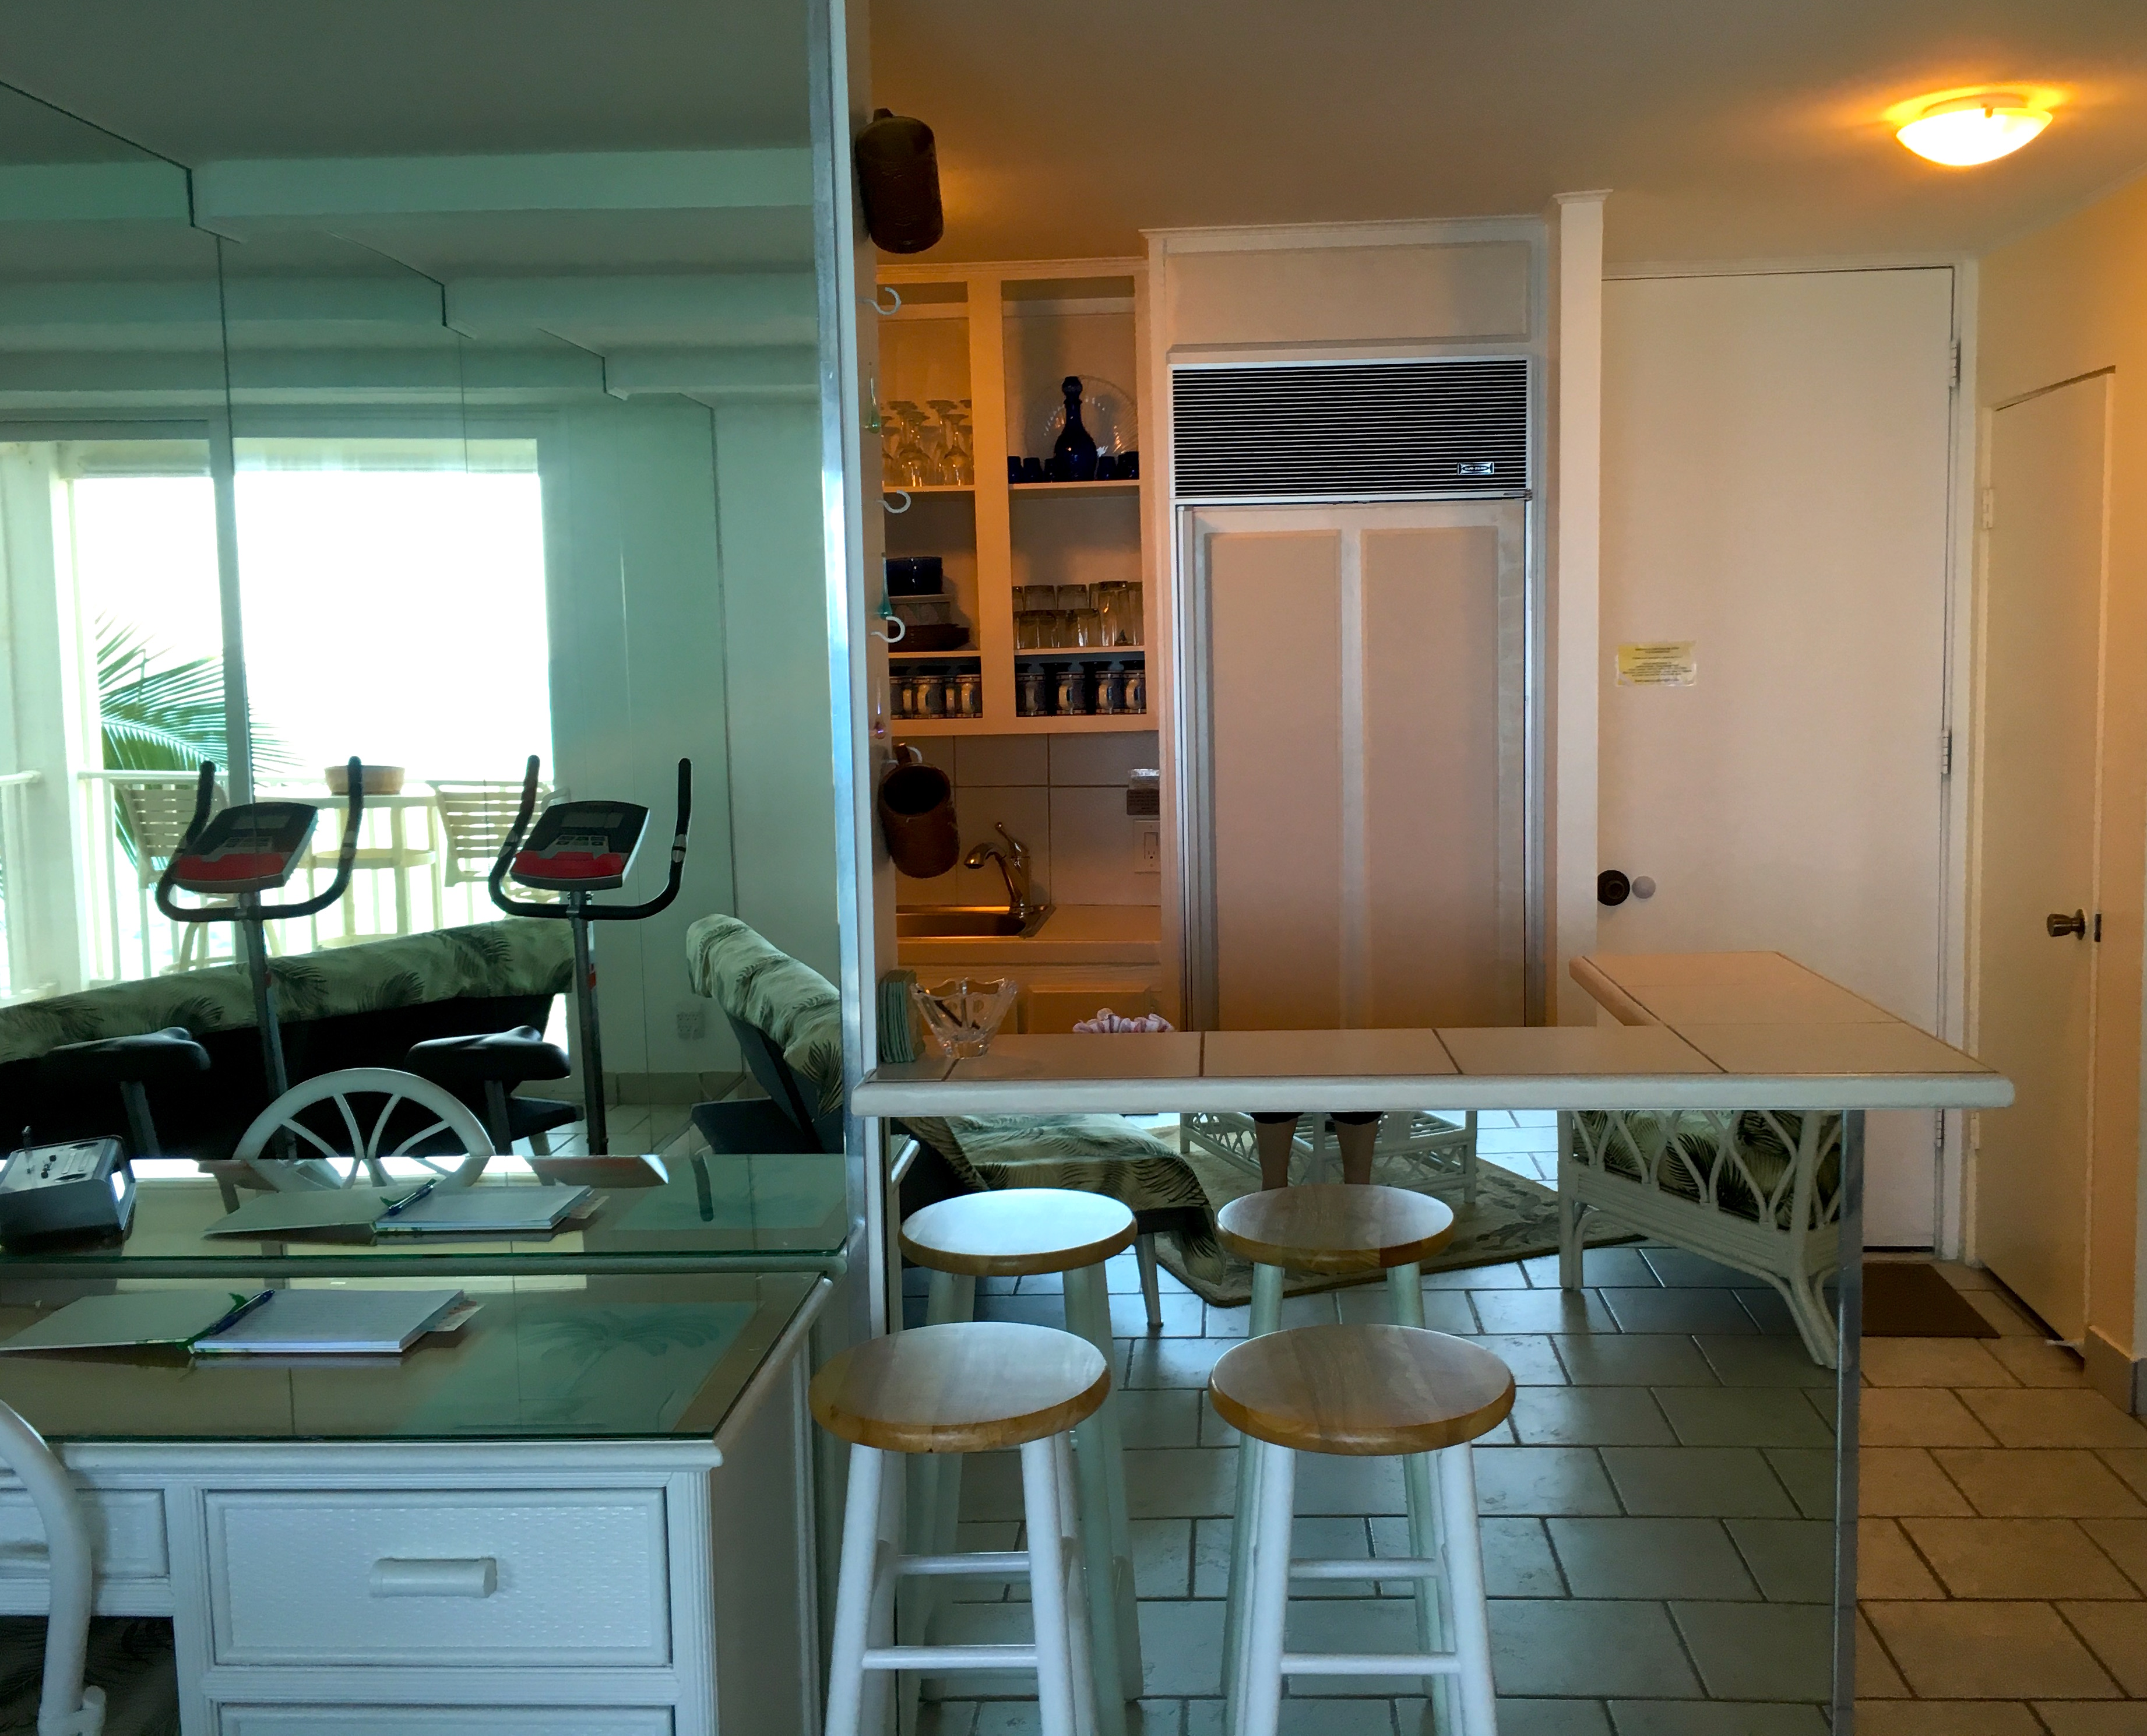 Open kitchen floor plan and desk as seen from the living room to kitchen.